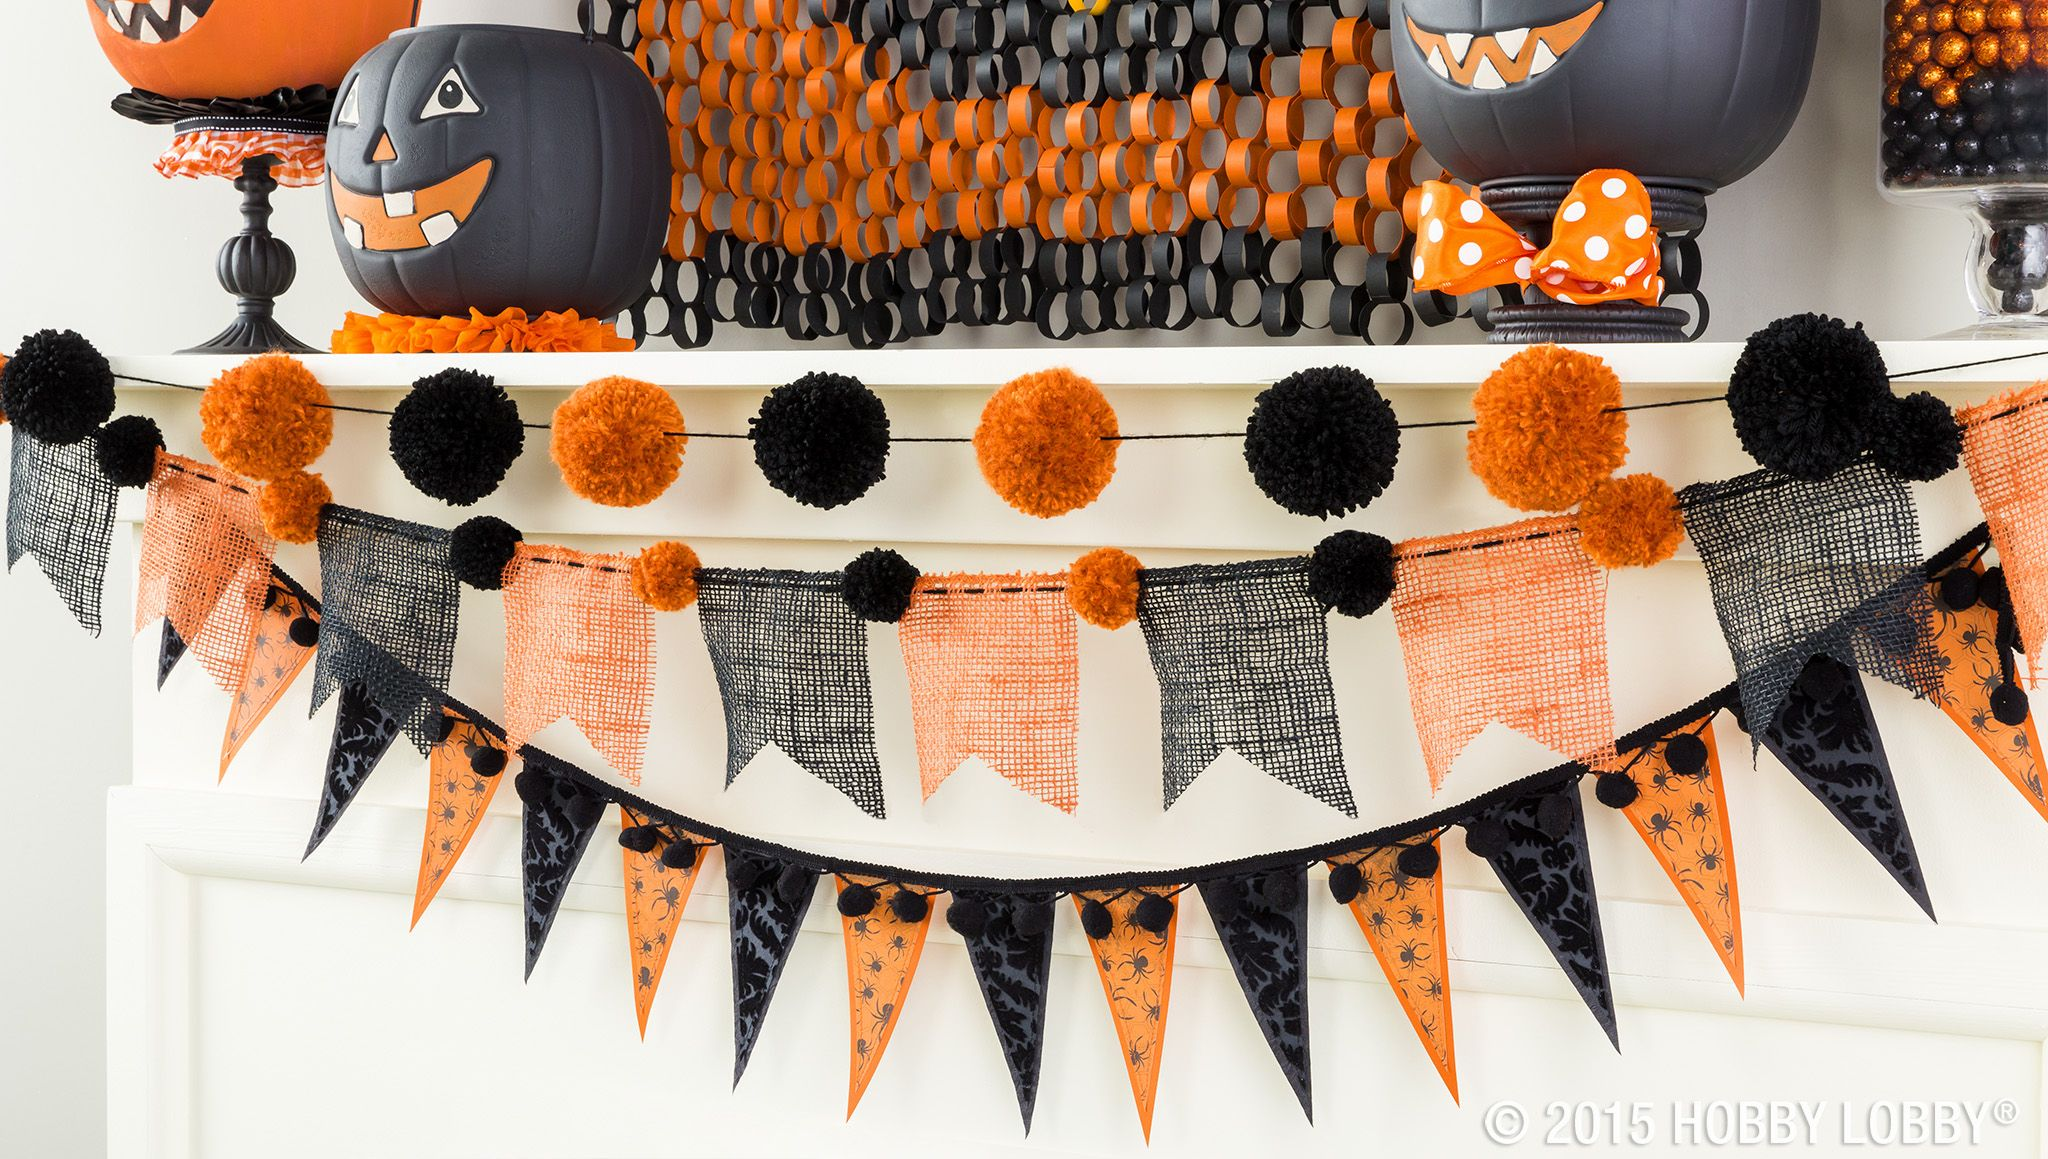 Burlap, scrapbook paper and homemade pom poms make up this marvelous